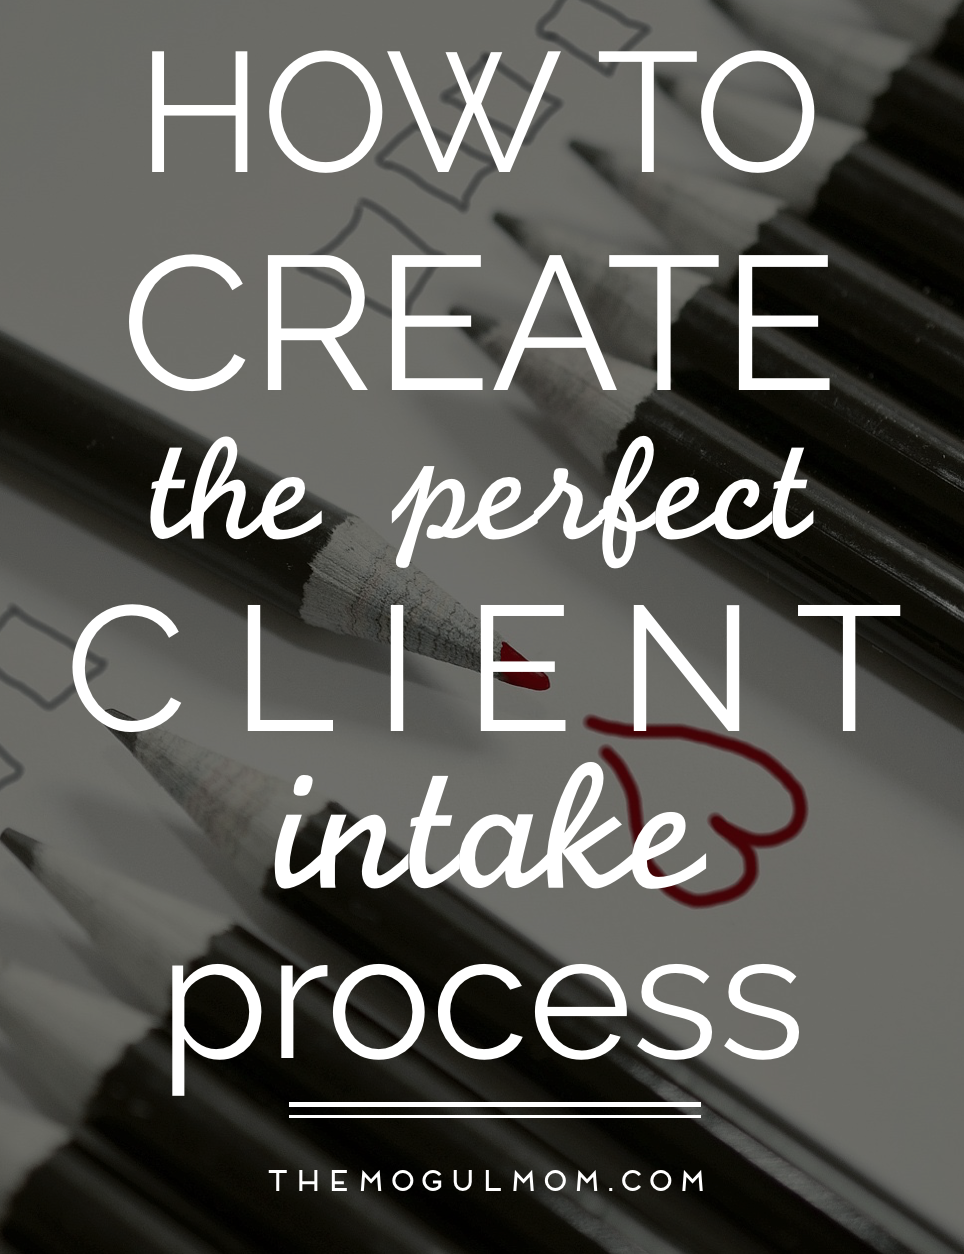 Make Your Customers Love You With Your Client Intake Process [INFOGRAPHIC]